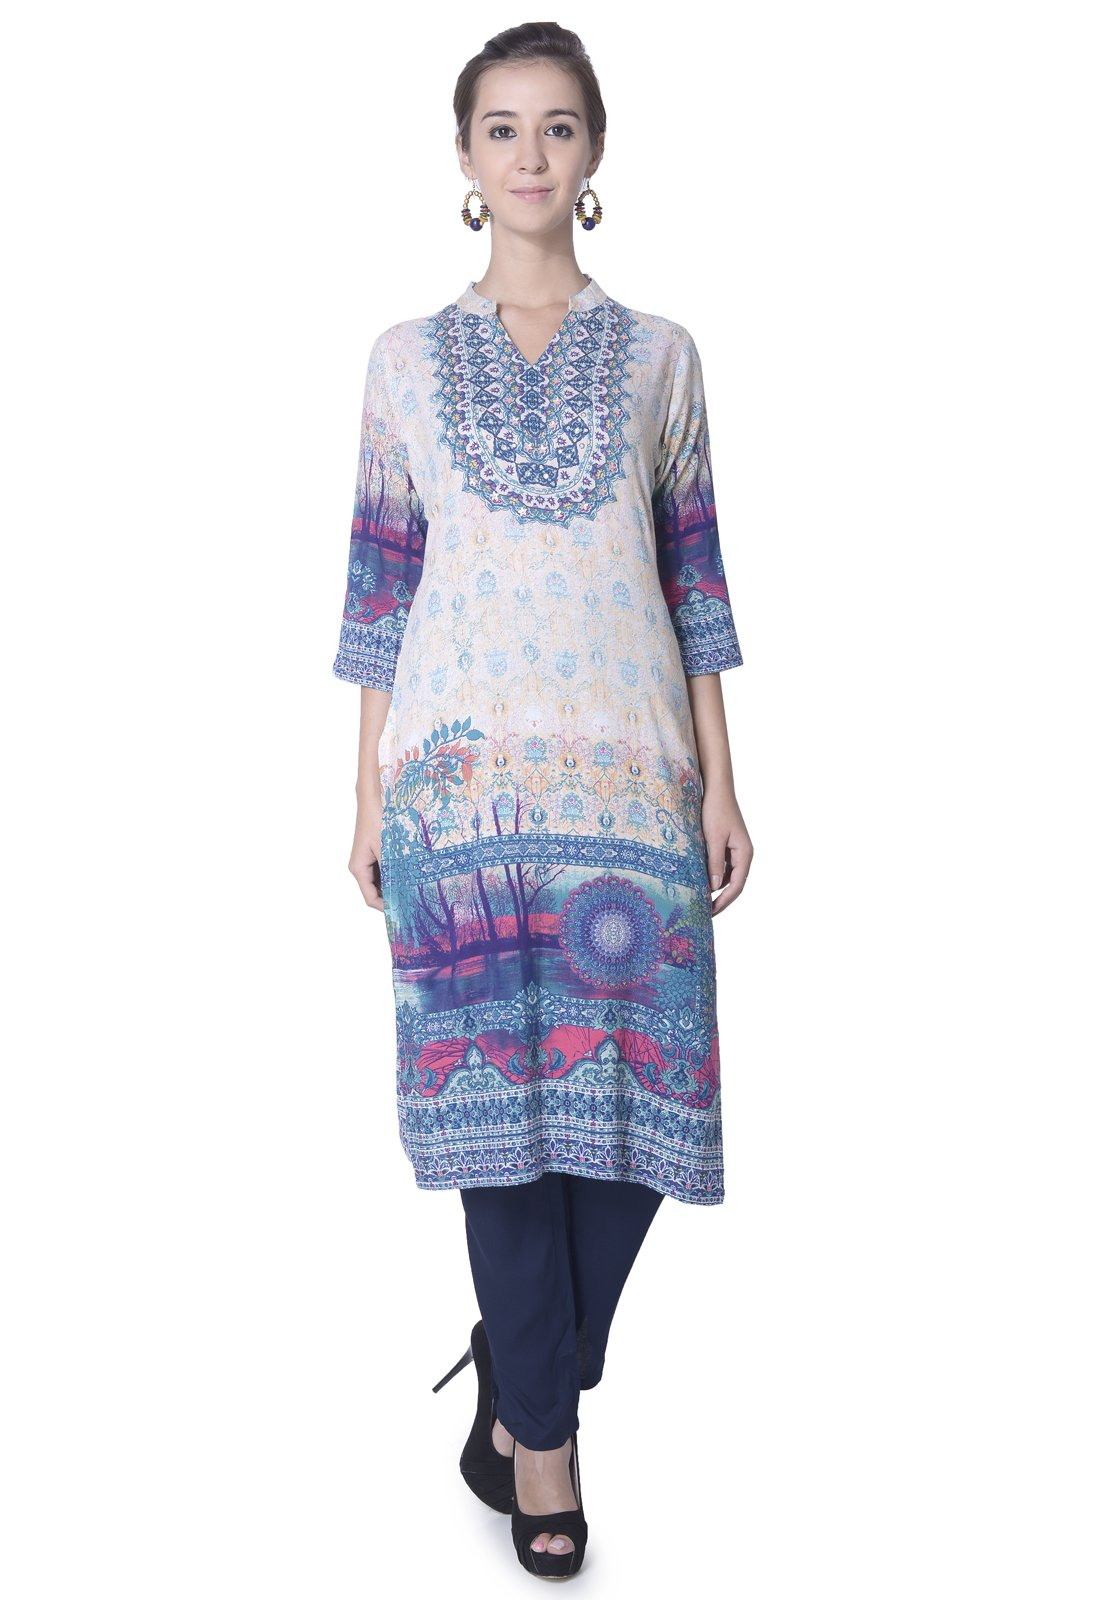 Lagi Designer Women Rayon Straight Floral Printed Kurti for Women Tunic Top r 3/4 Sleeve Dress. (XL, Blue 3)